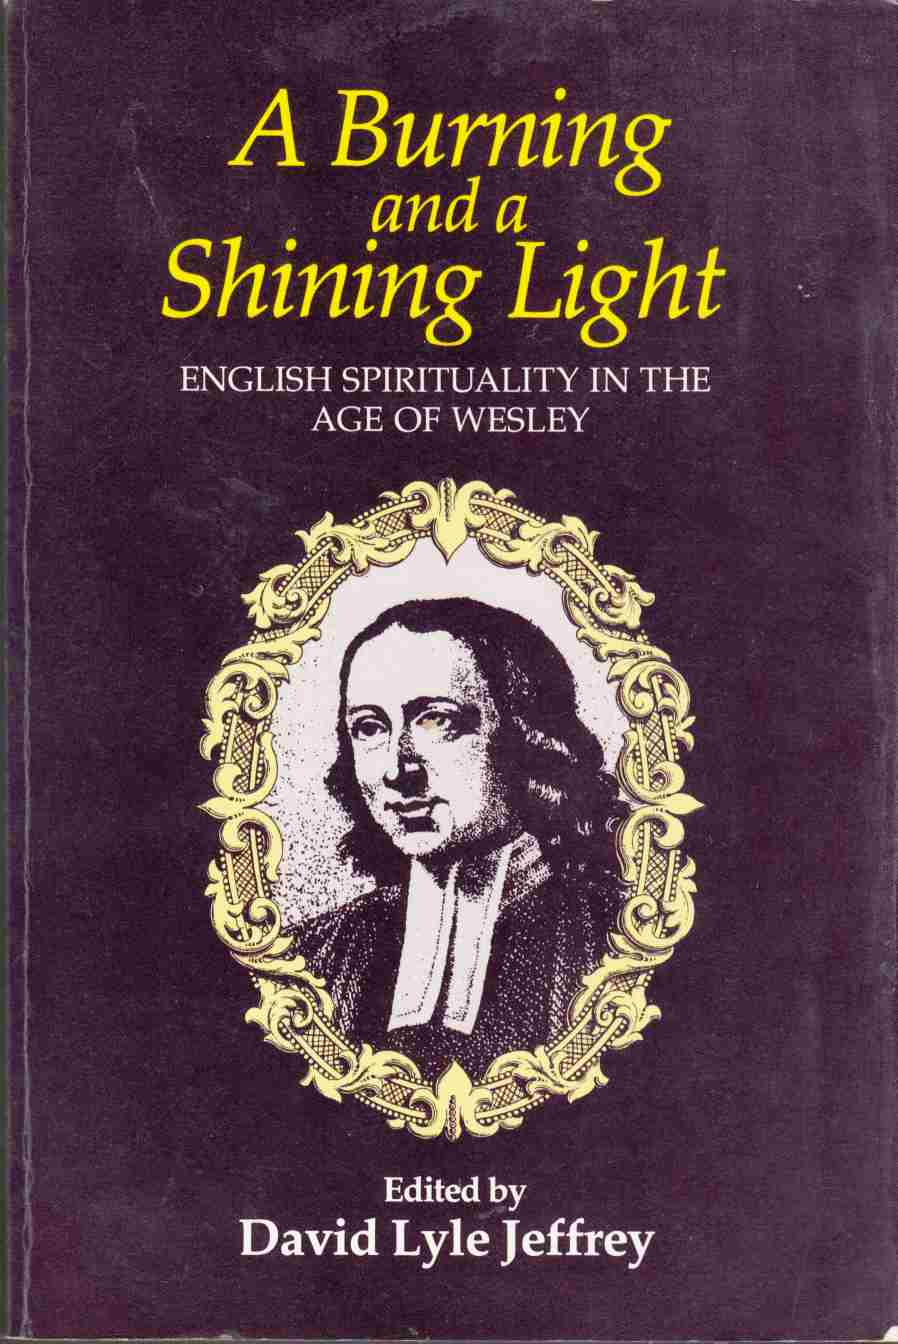 Image for A Burning and a Shining Light English Spirituality in the Age of Wesley